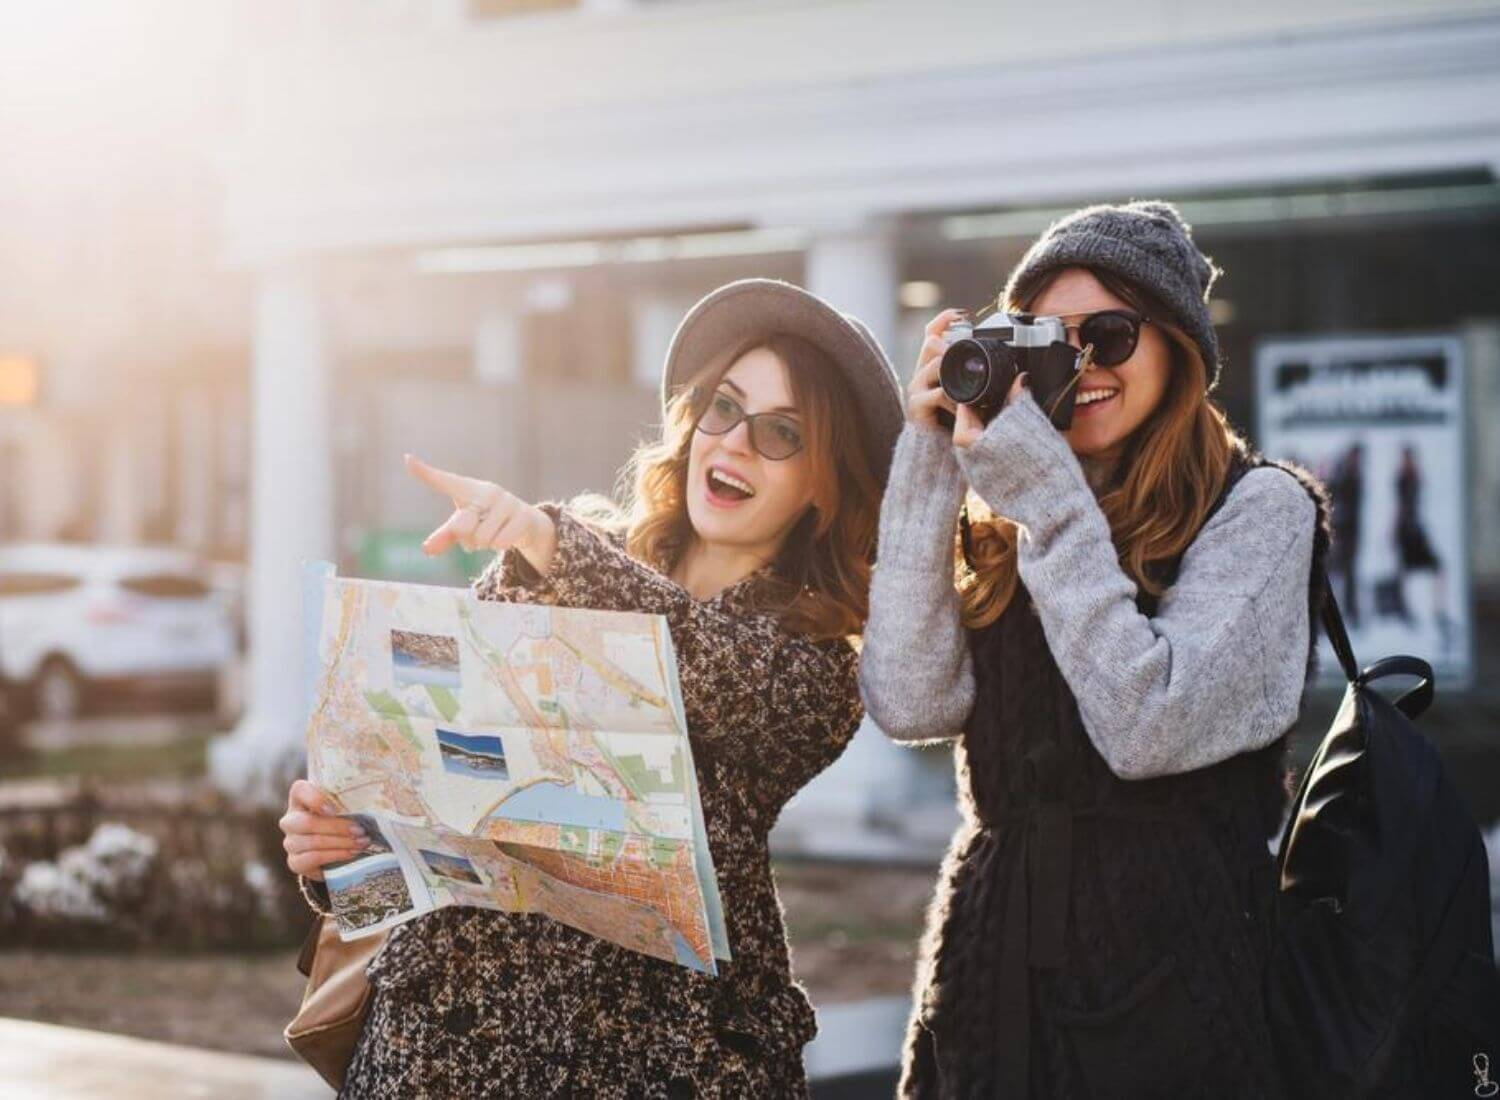 7 Different Ways Travel Helps You Grow As A Person